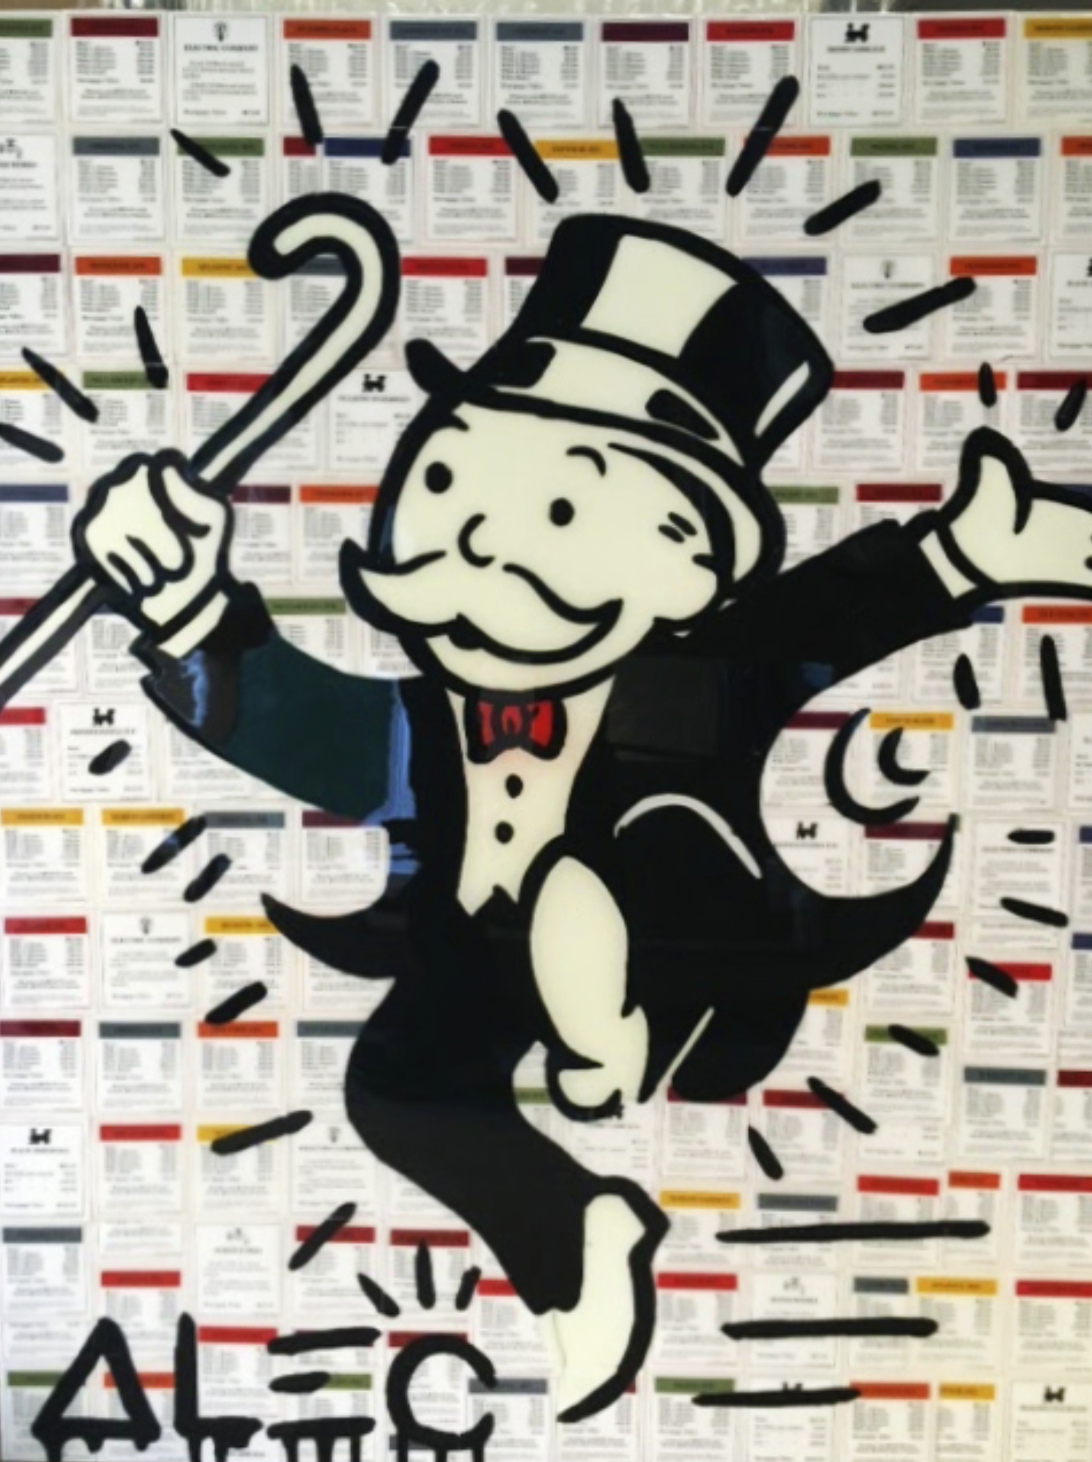 Monopoly Man on Game Cards by Alec Monopoly